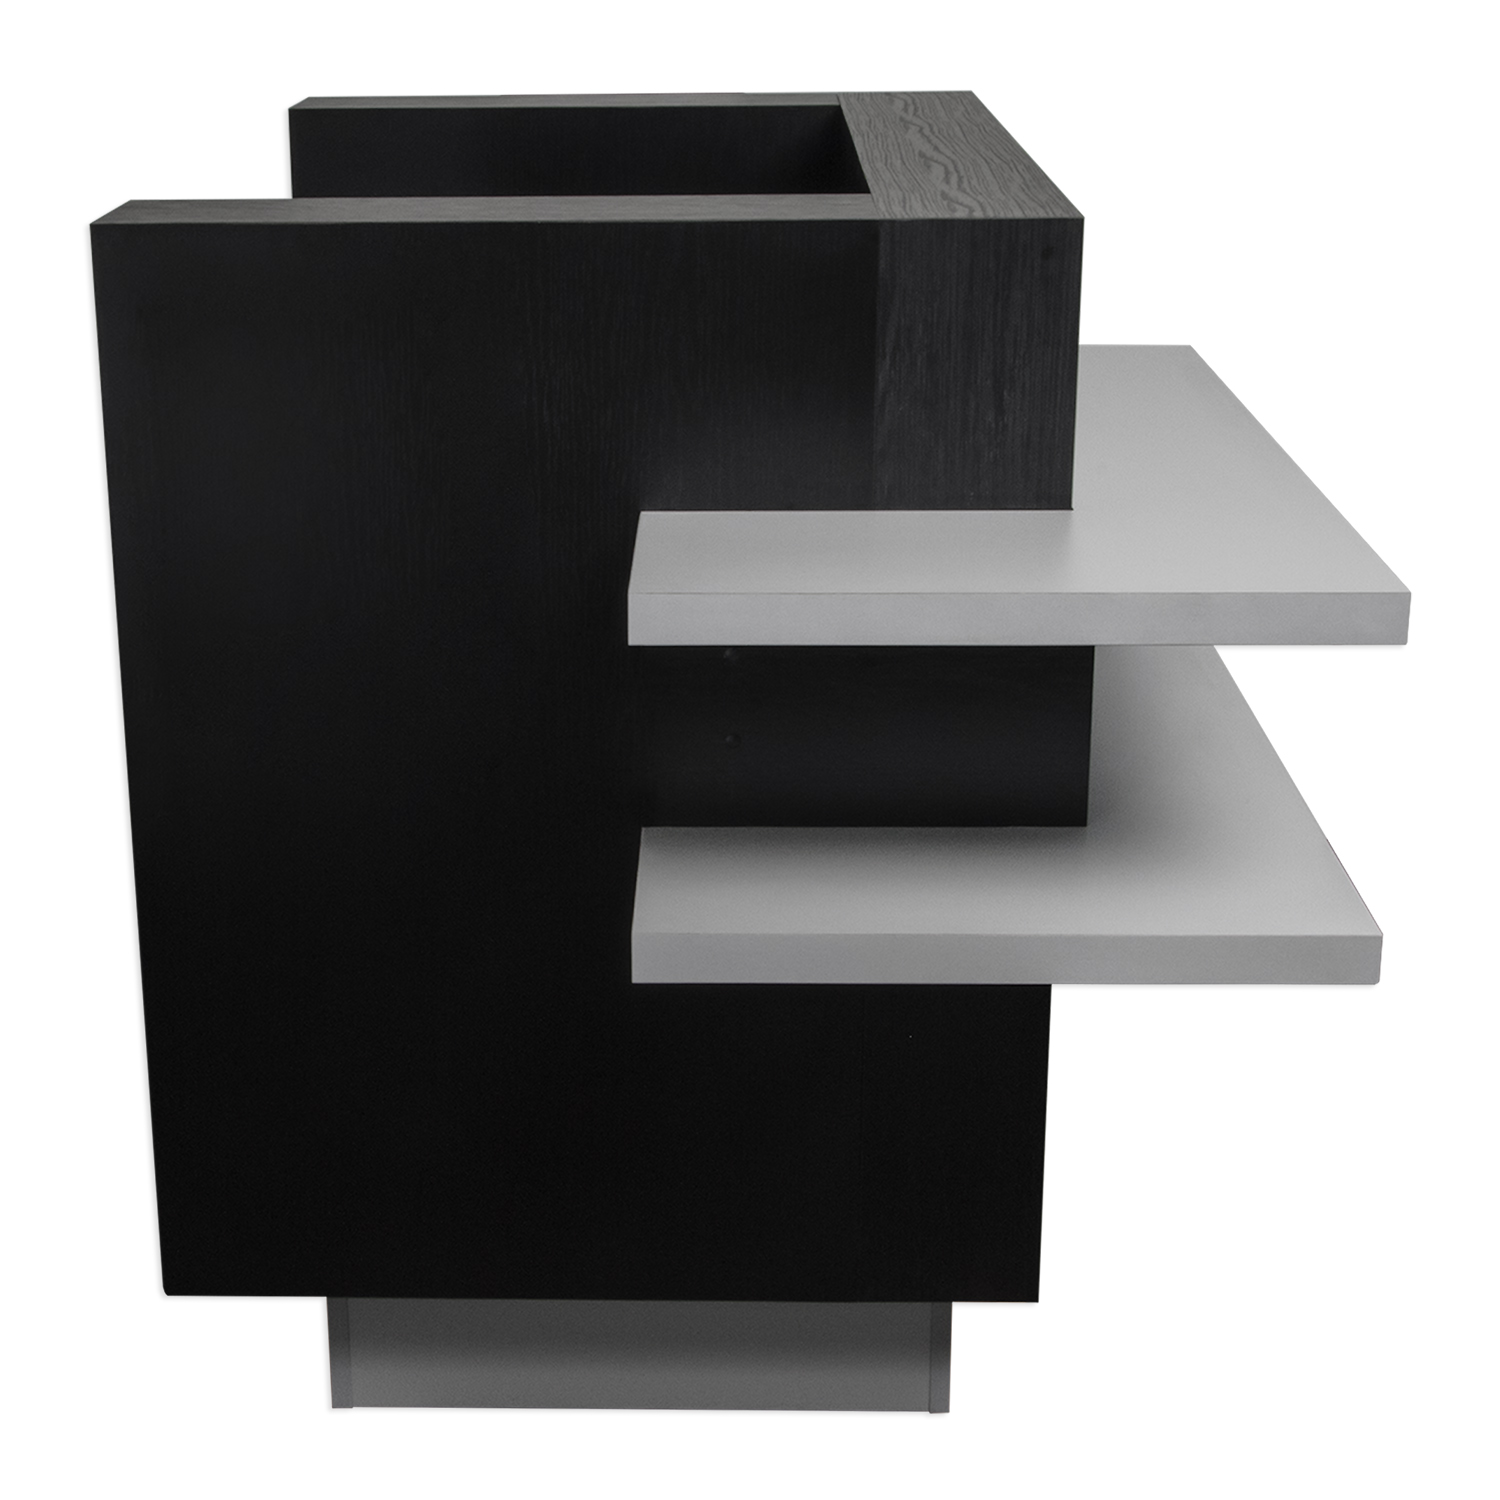 Logan Reception Desk for Salon Front Area alternative product image 2